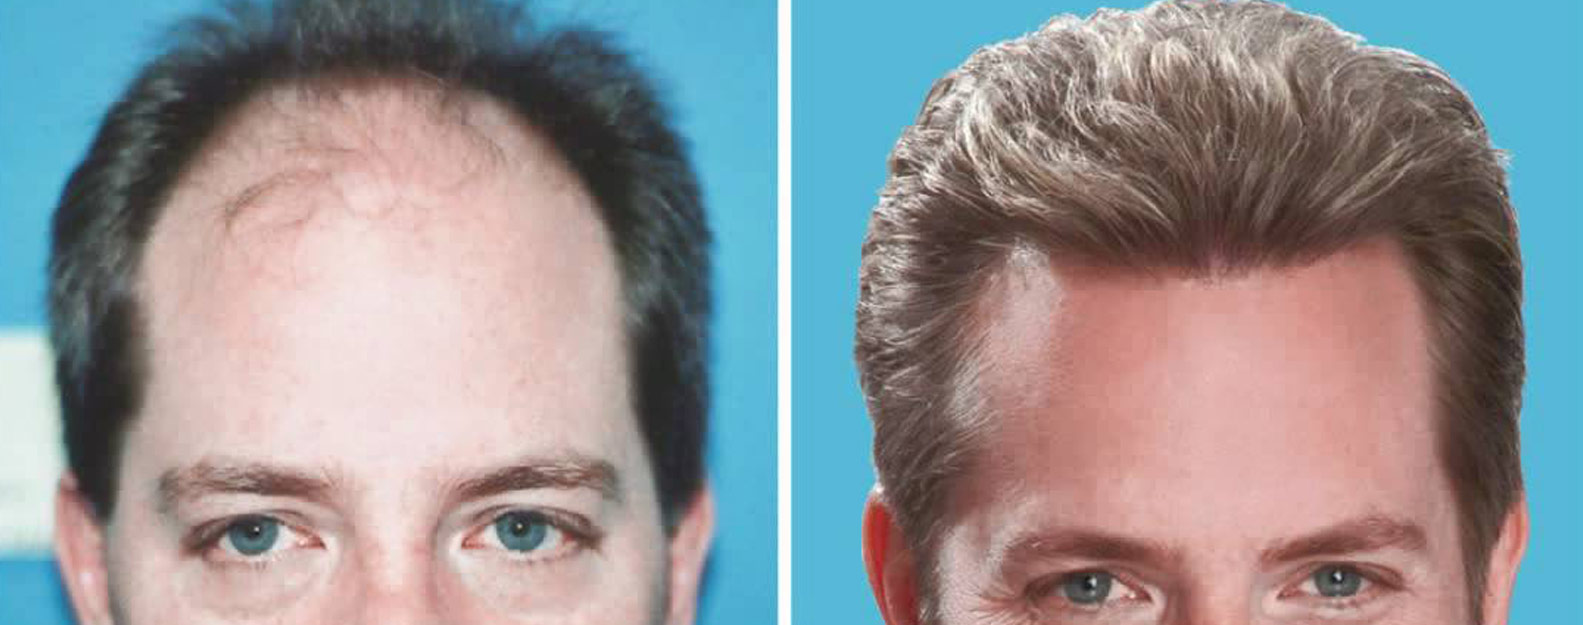 Looks Enhance Hair Clinic Non Surgical Hair Replacement Services